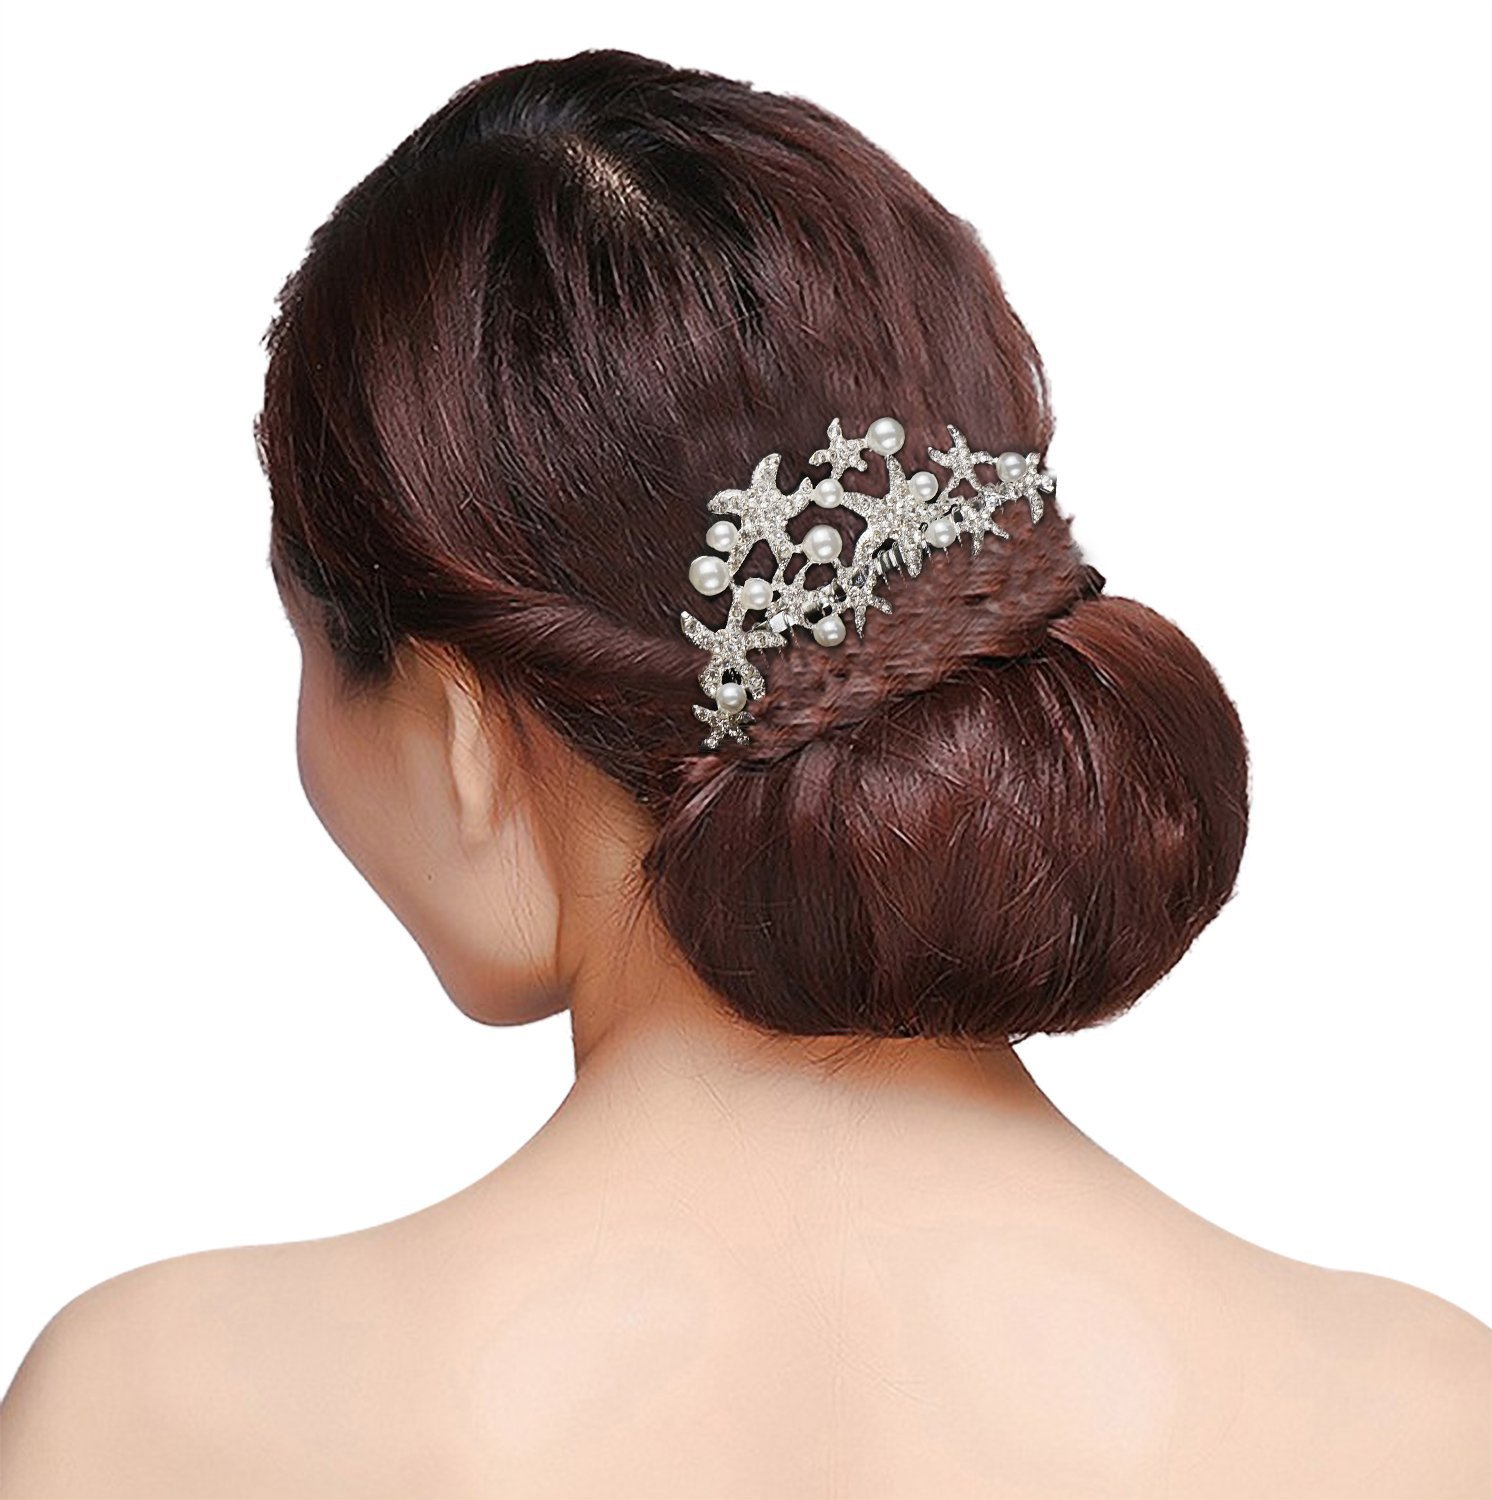 Lovful Womens Silver Starfish Hair Comb with Imitation Pearls Bridal Bridesmaid Wedding Crystal Hairpiece Accessory, Silver_2